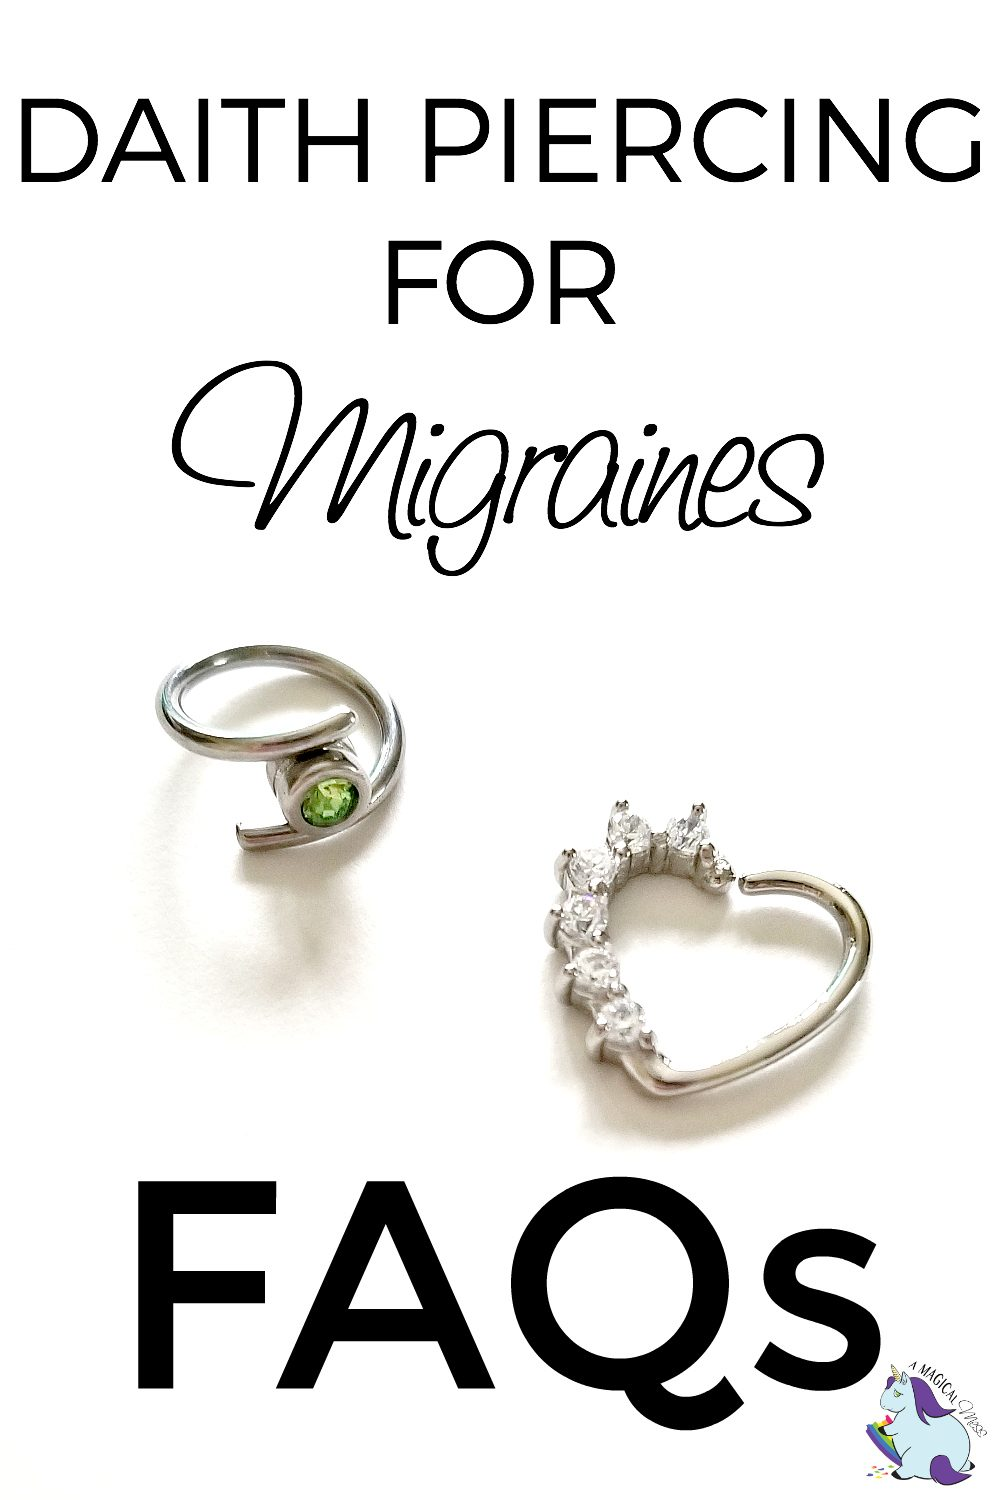 Daith Piercings for Migraines - FAQs #Daith #Migraines